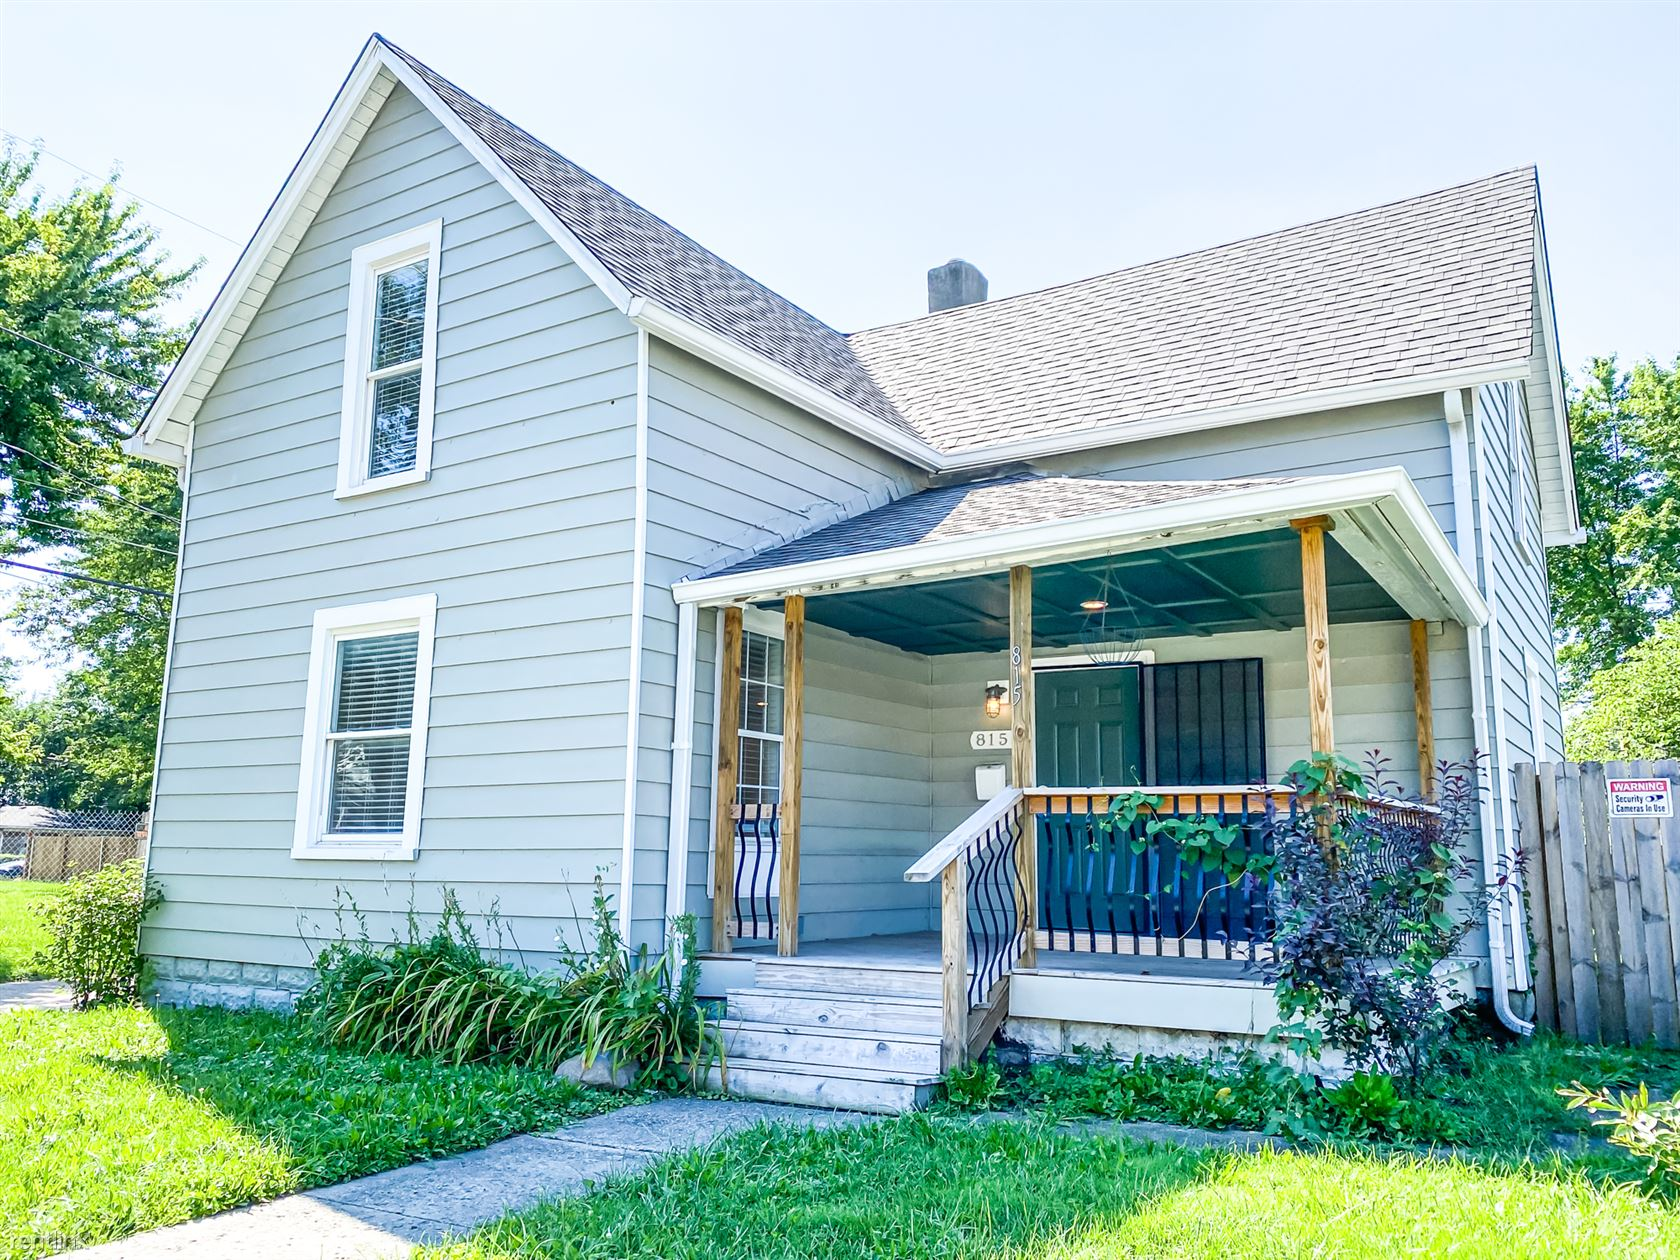 815 E 25th St, Indianapolis, IN - $1,995